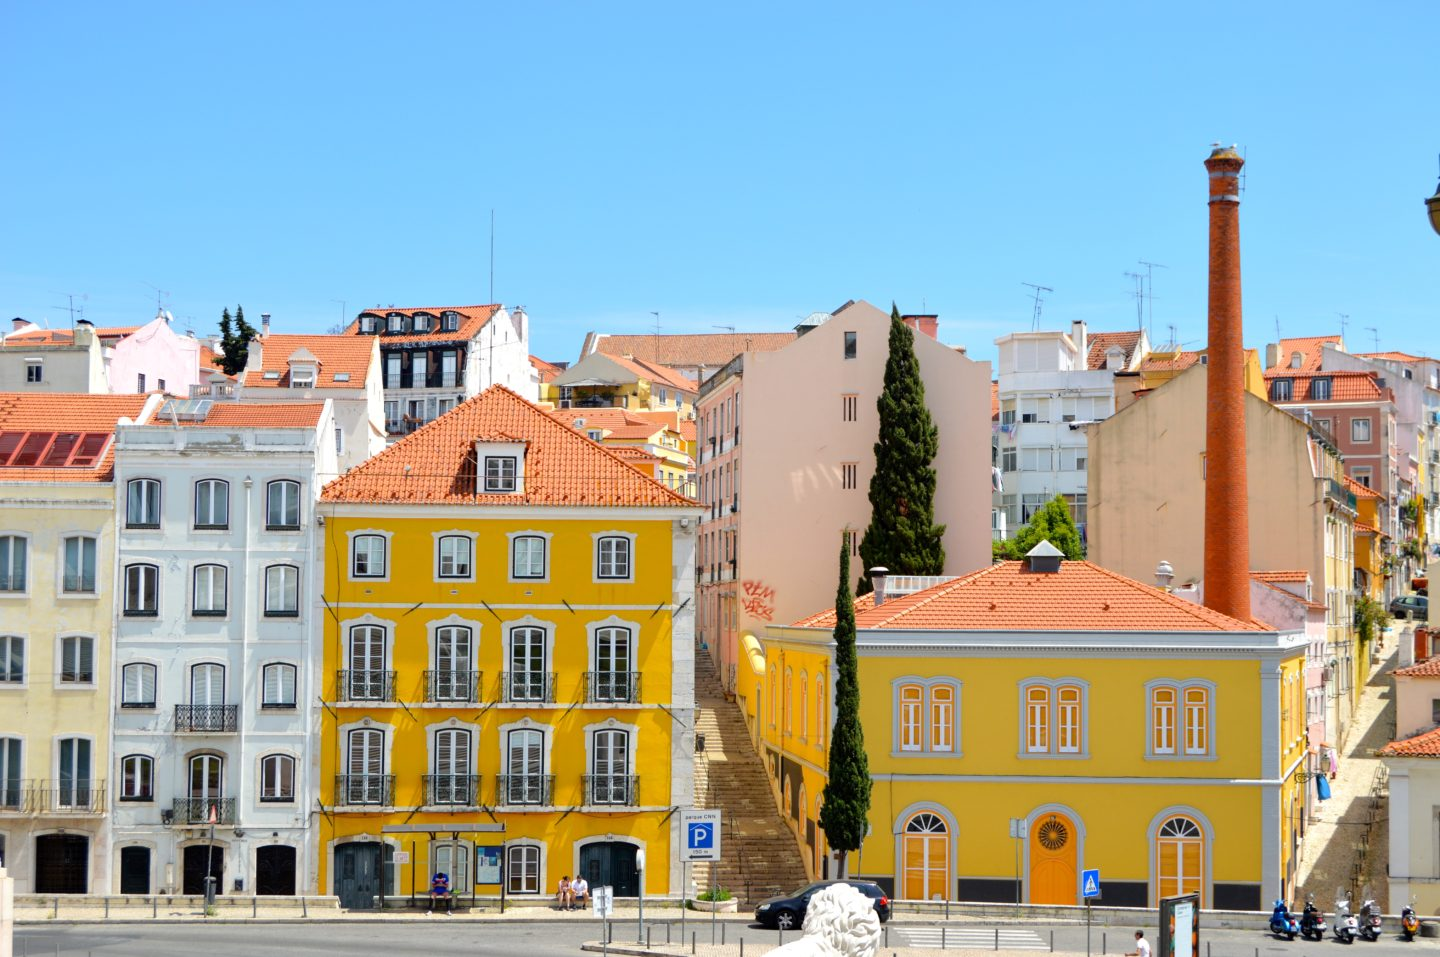 Colorful streets of Lisbon full of bright sunshine yellow paint and gorgeous pops of orange rooftops